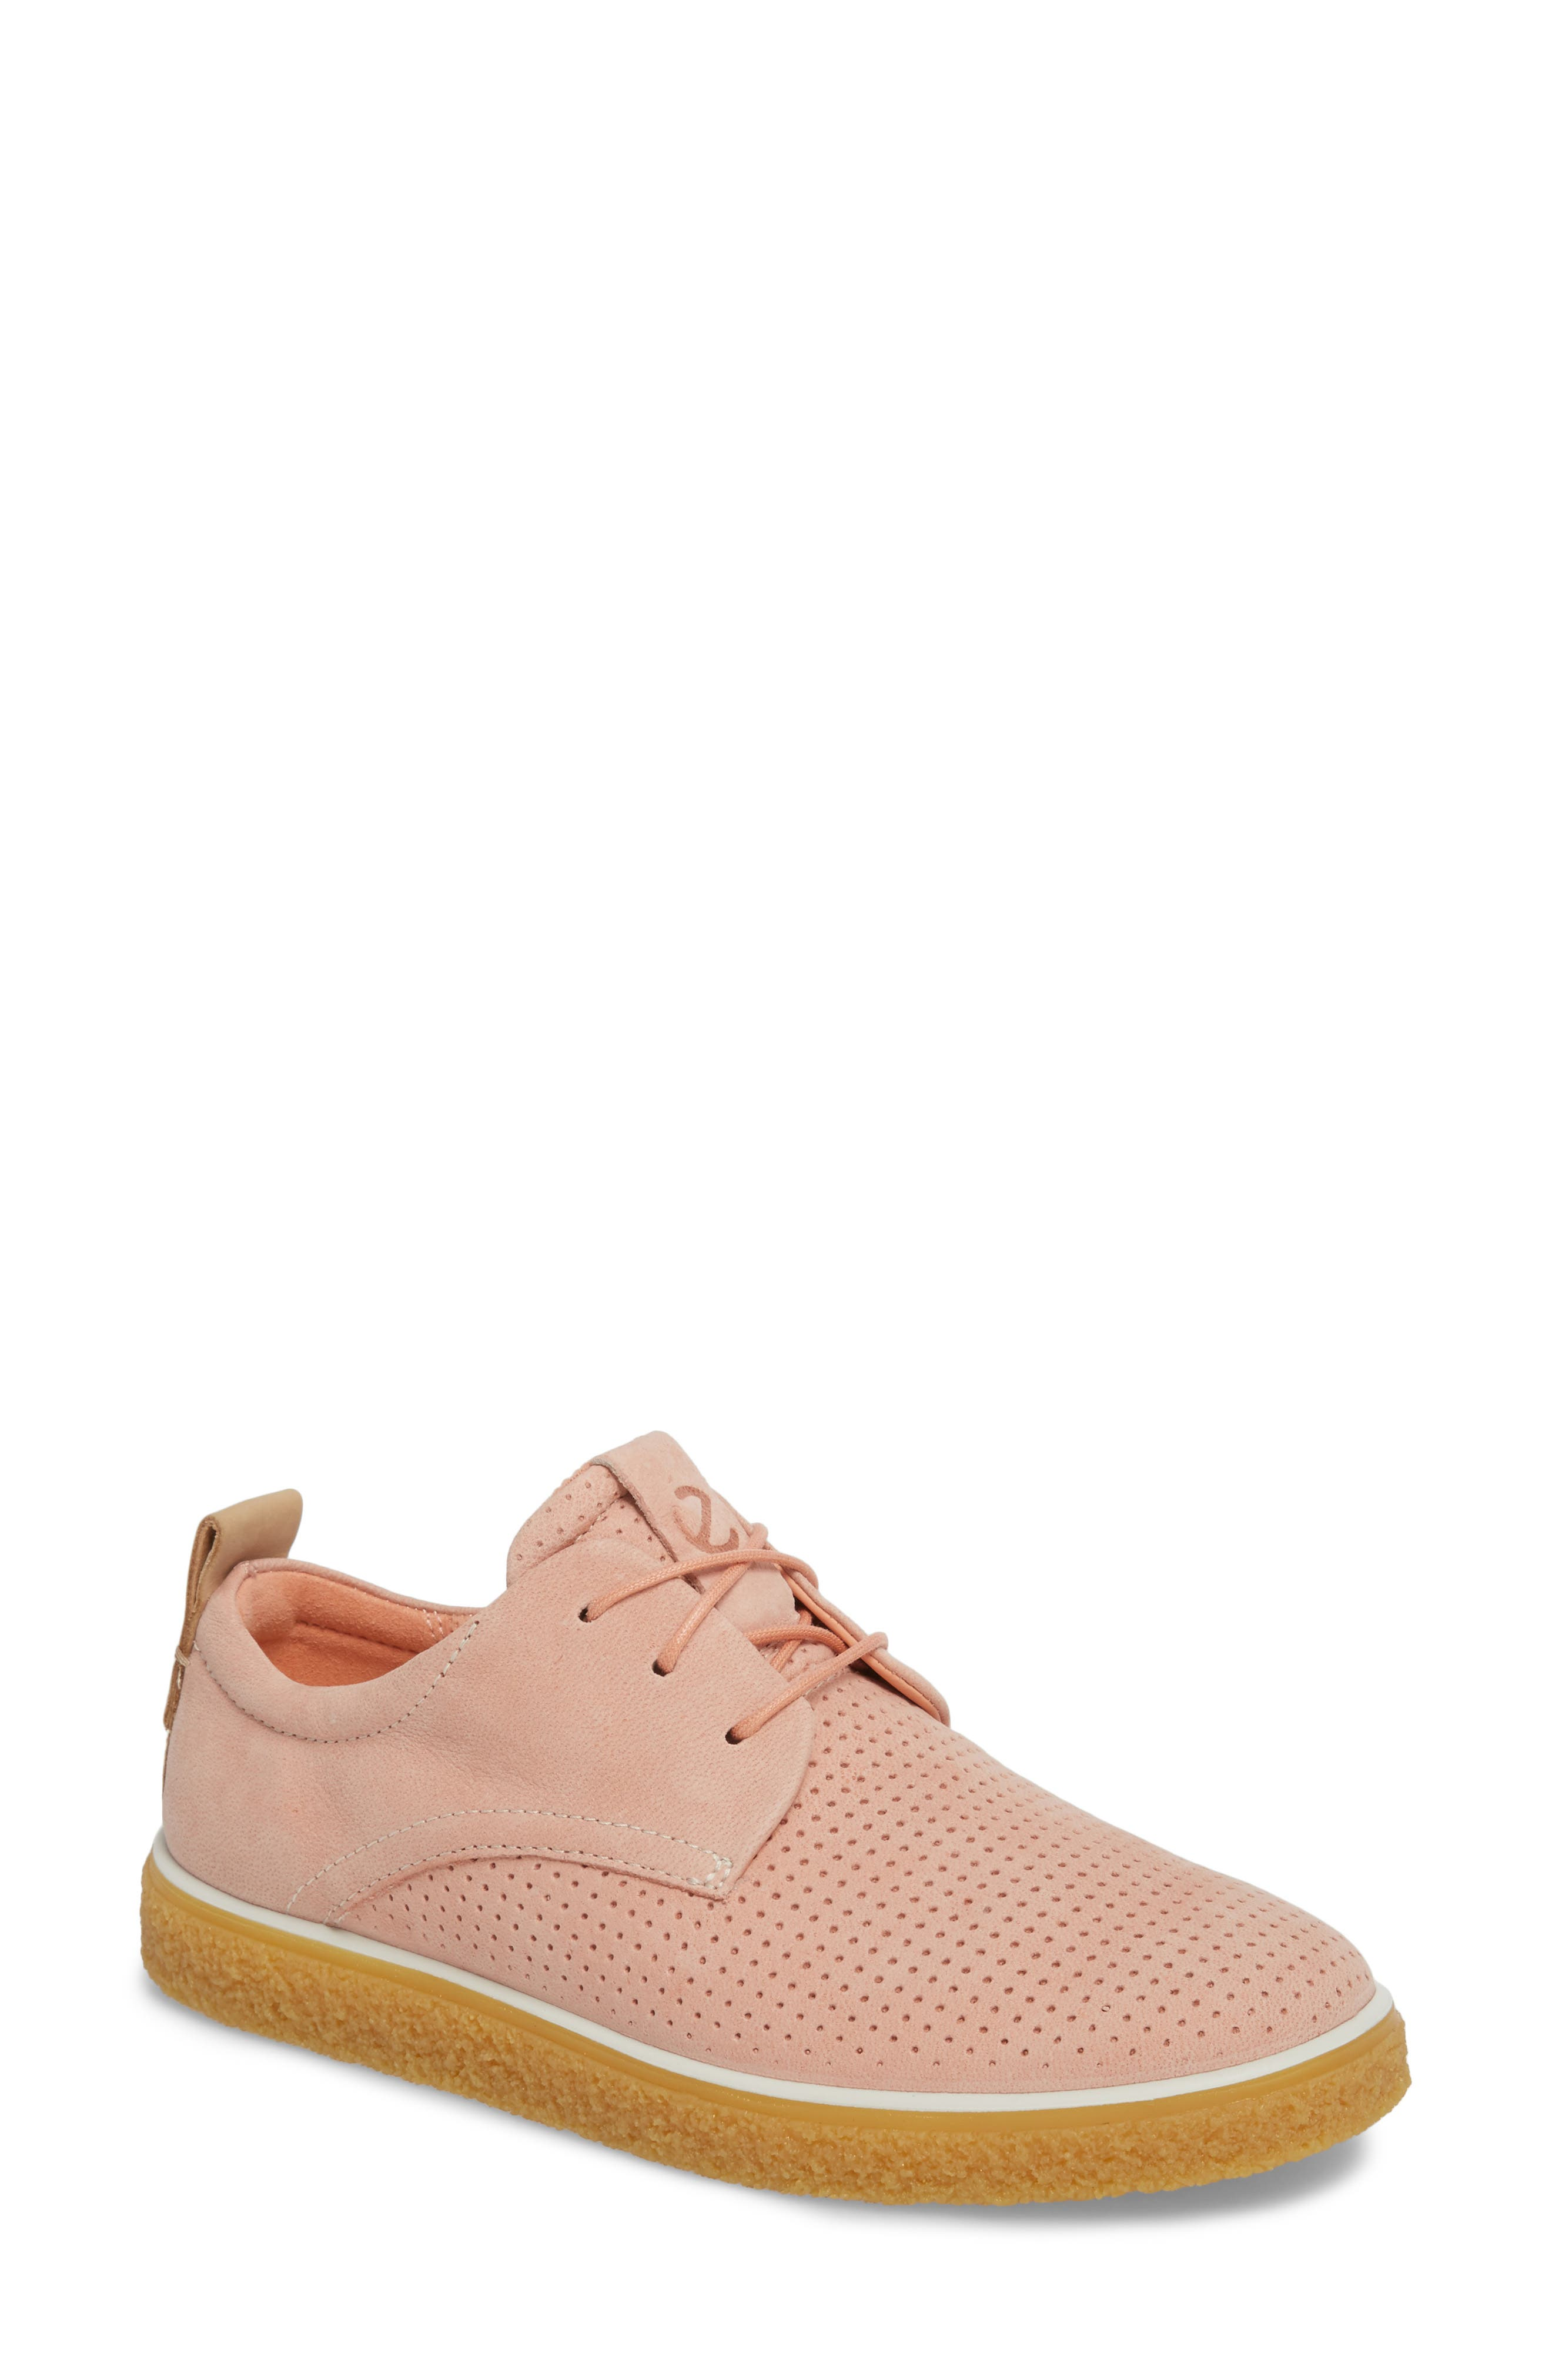 Crepetray Sneaker,                         Main,                         color, Muted Clay Powder Leather